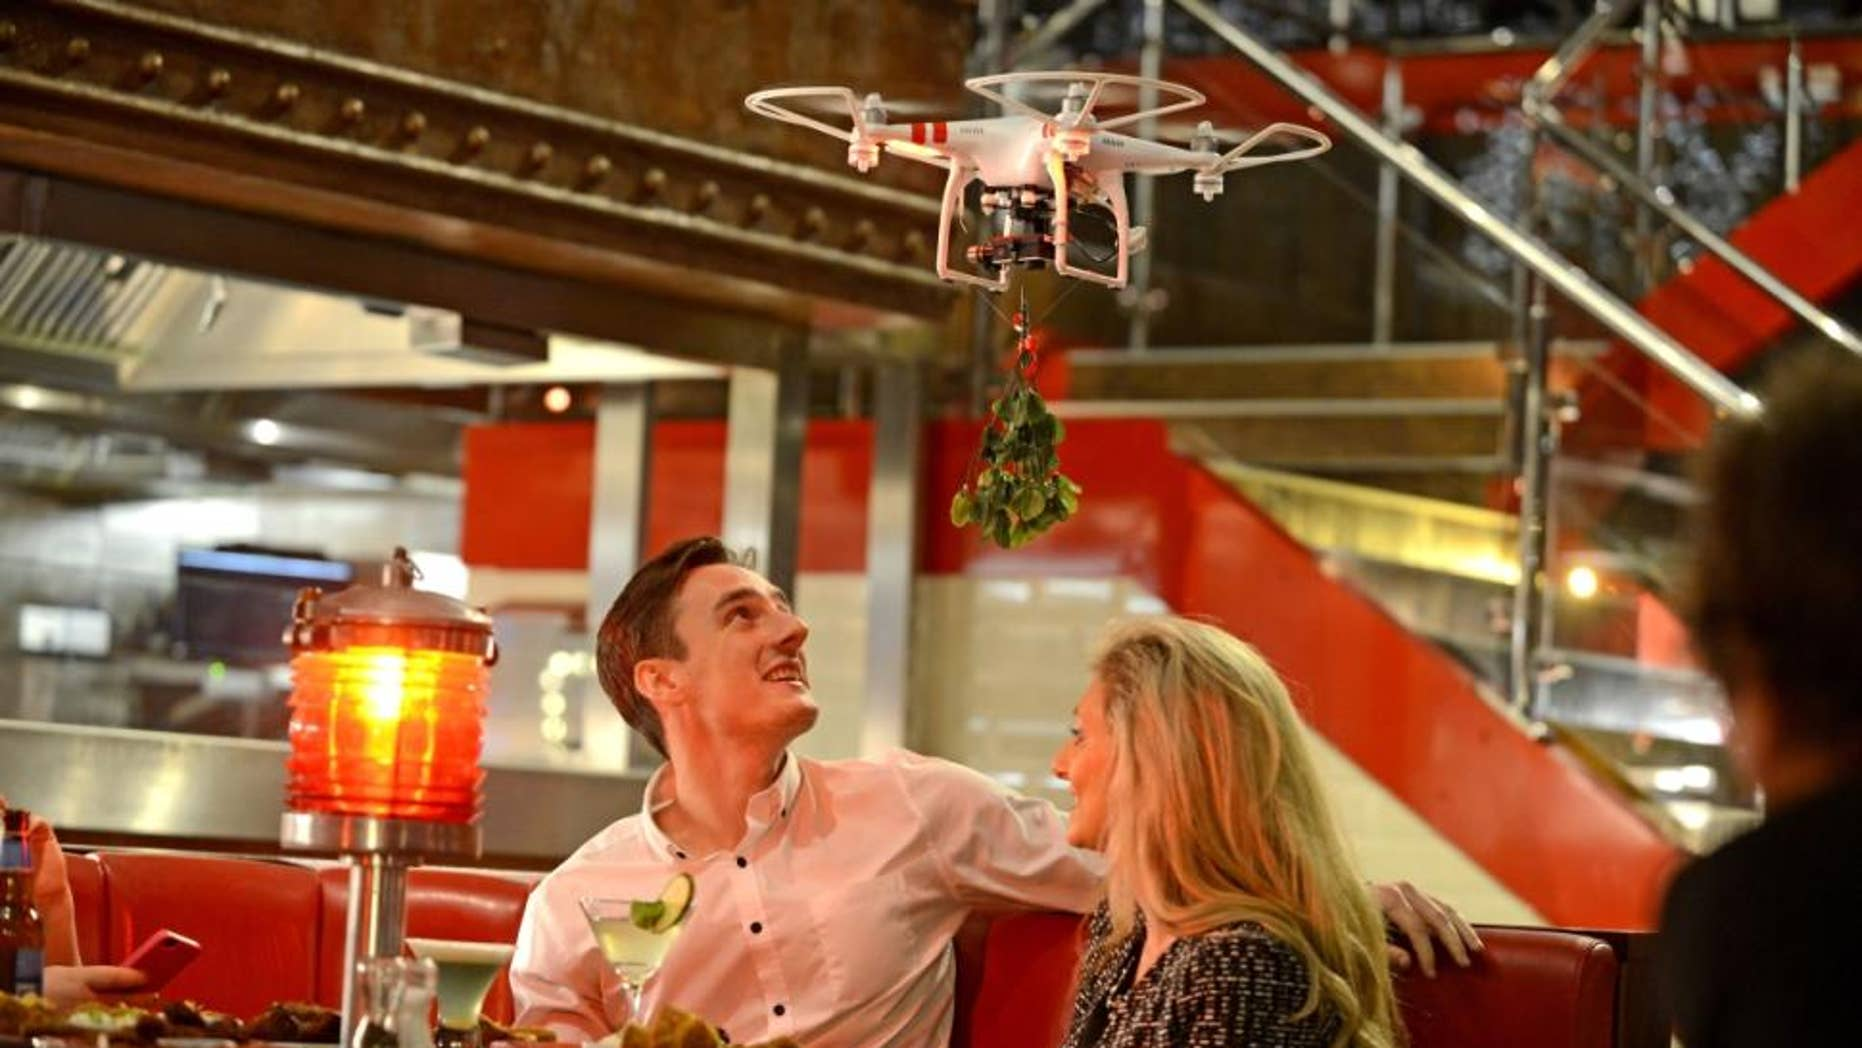 A Mobile Mistletoe drone hovers over a couple.